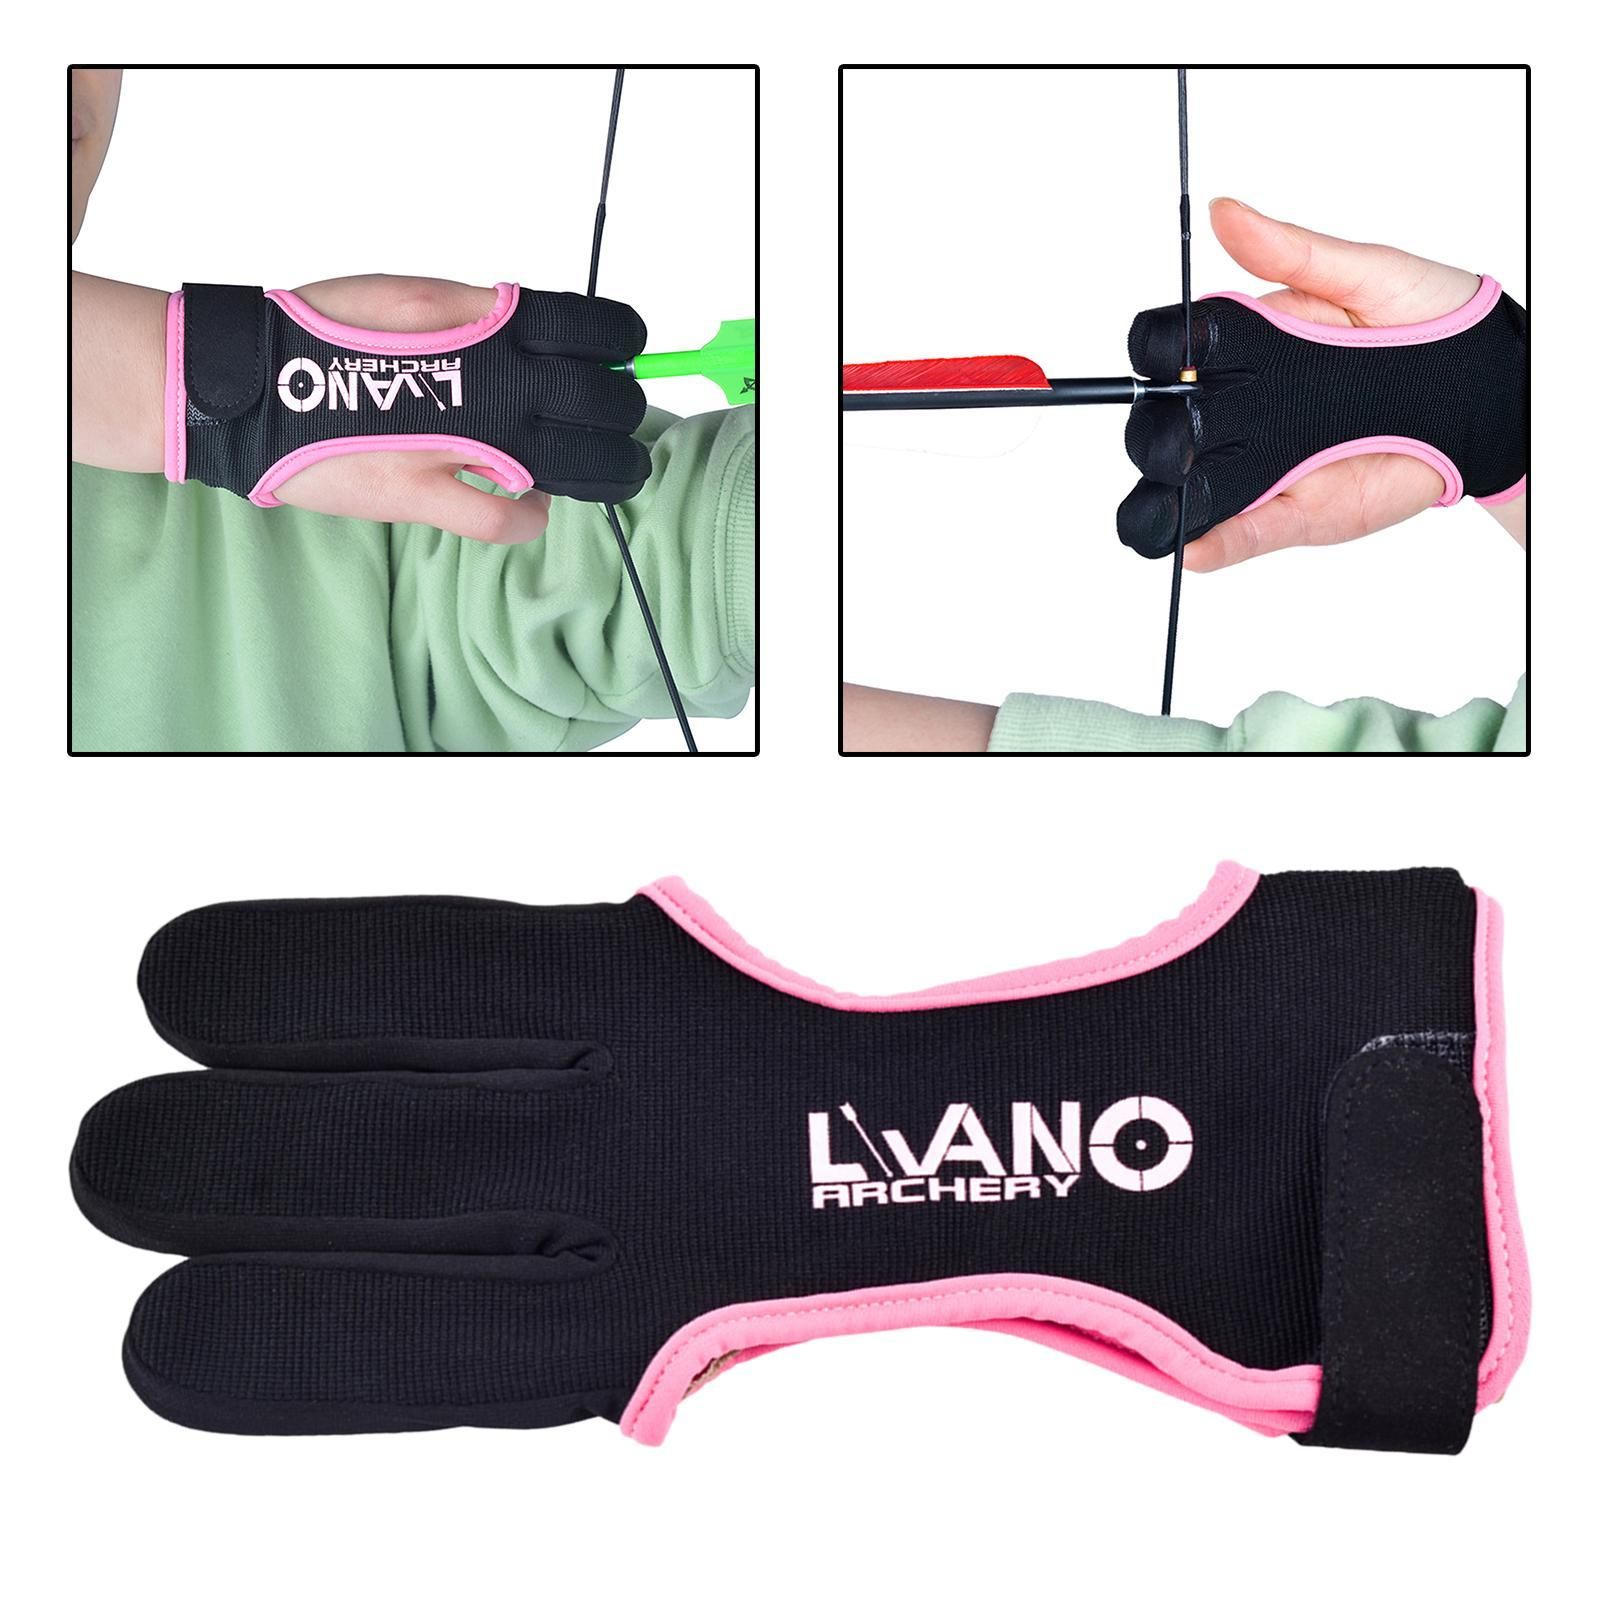 thumbnail 20 - Archery Glove for Recurve & Compound Bow 3 Finger Guard for Women Men Youth